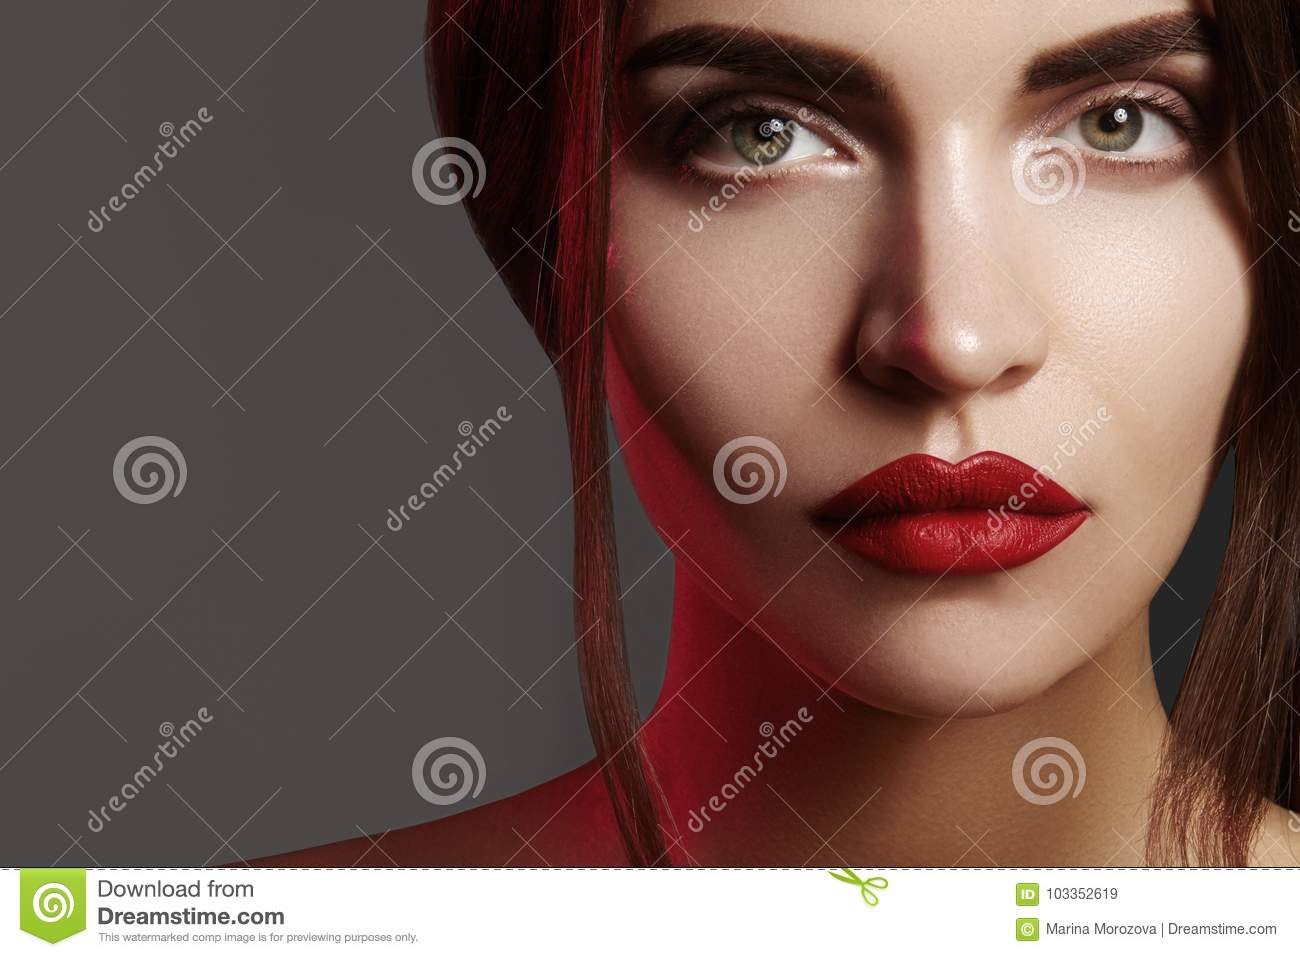 Closeup portrait with of beautiful woman face. Red color of fashion lip makeup, clean shiny skin and strong eyebrows